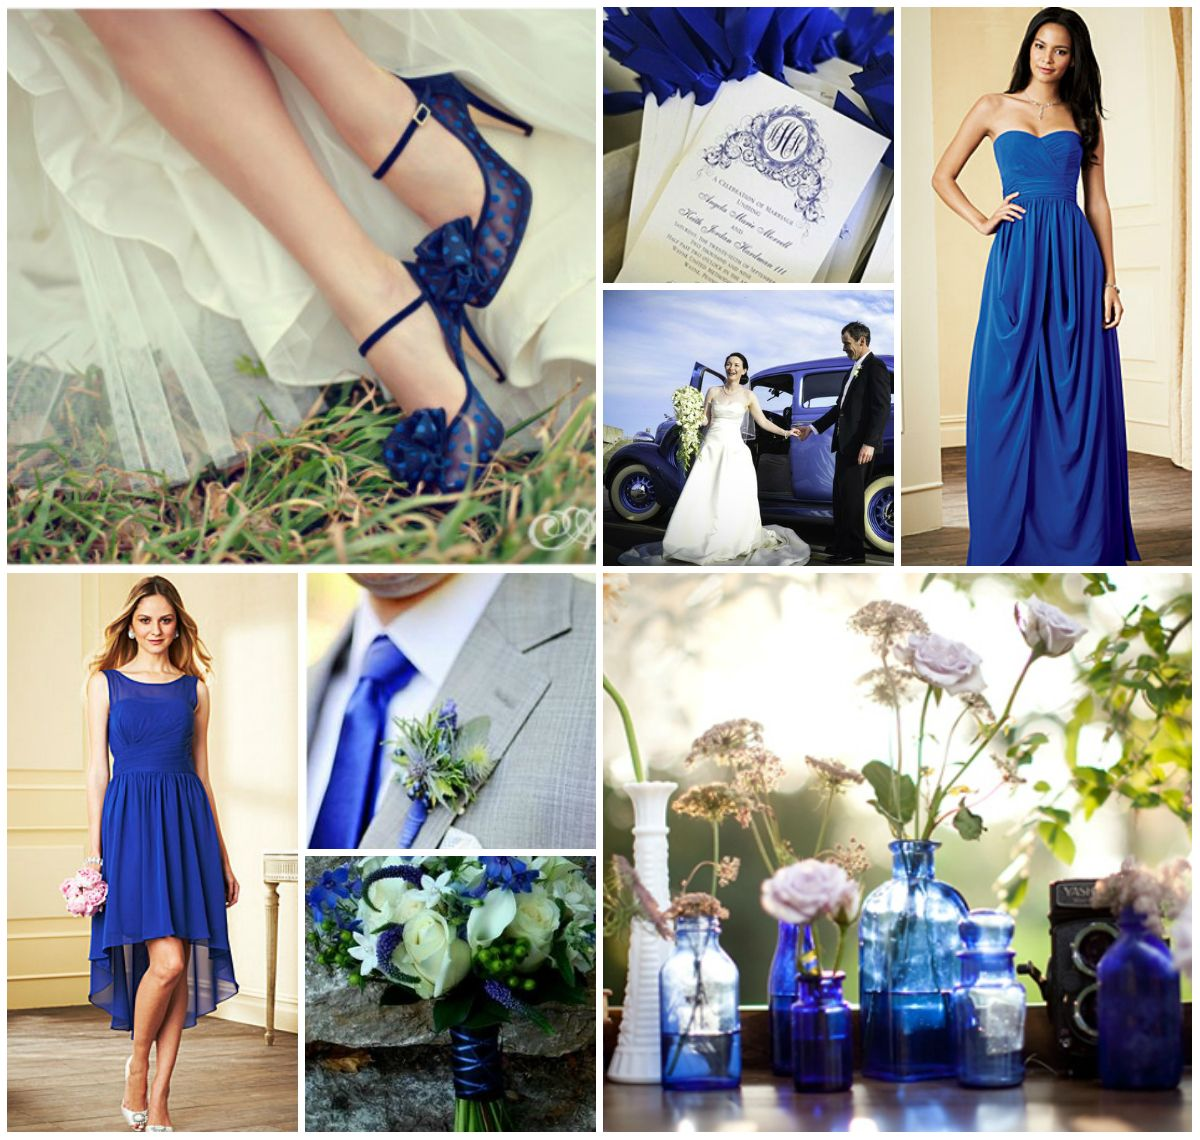 Wedding White Or Blue Shirt: Inspiration For A Vibrant Royal Blue Wedding. Love The